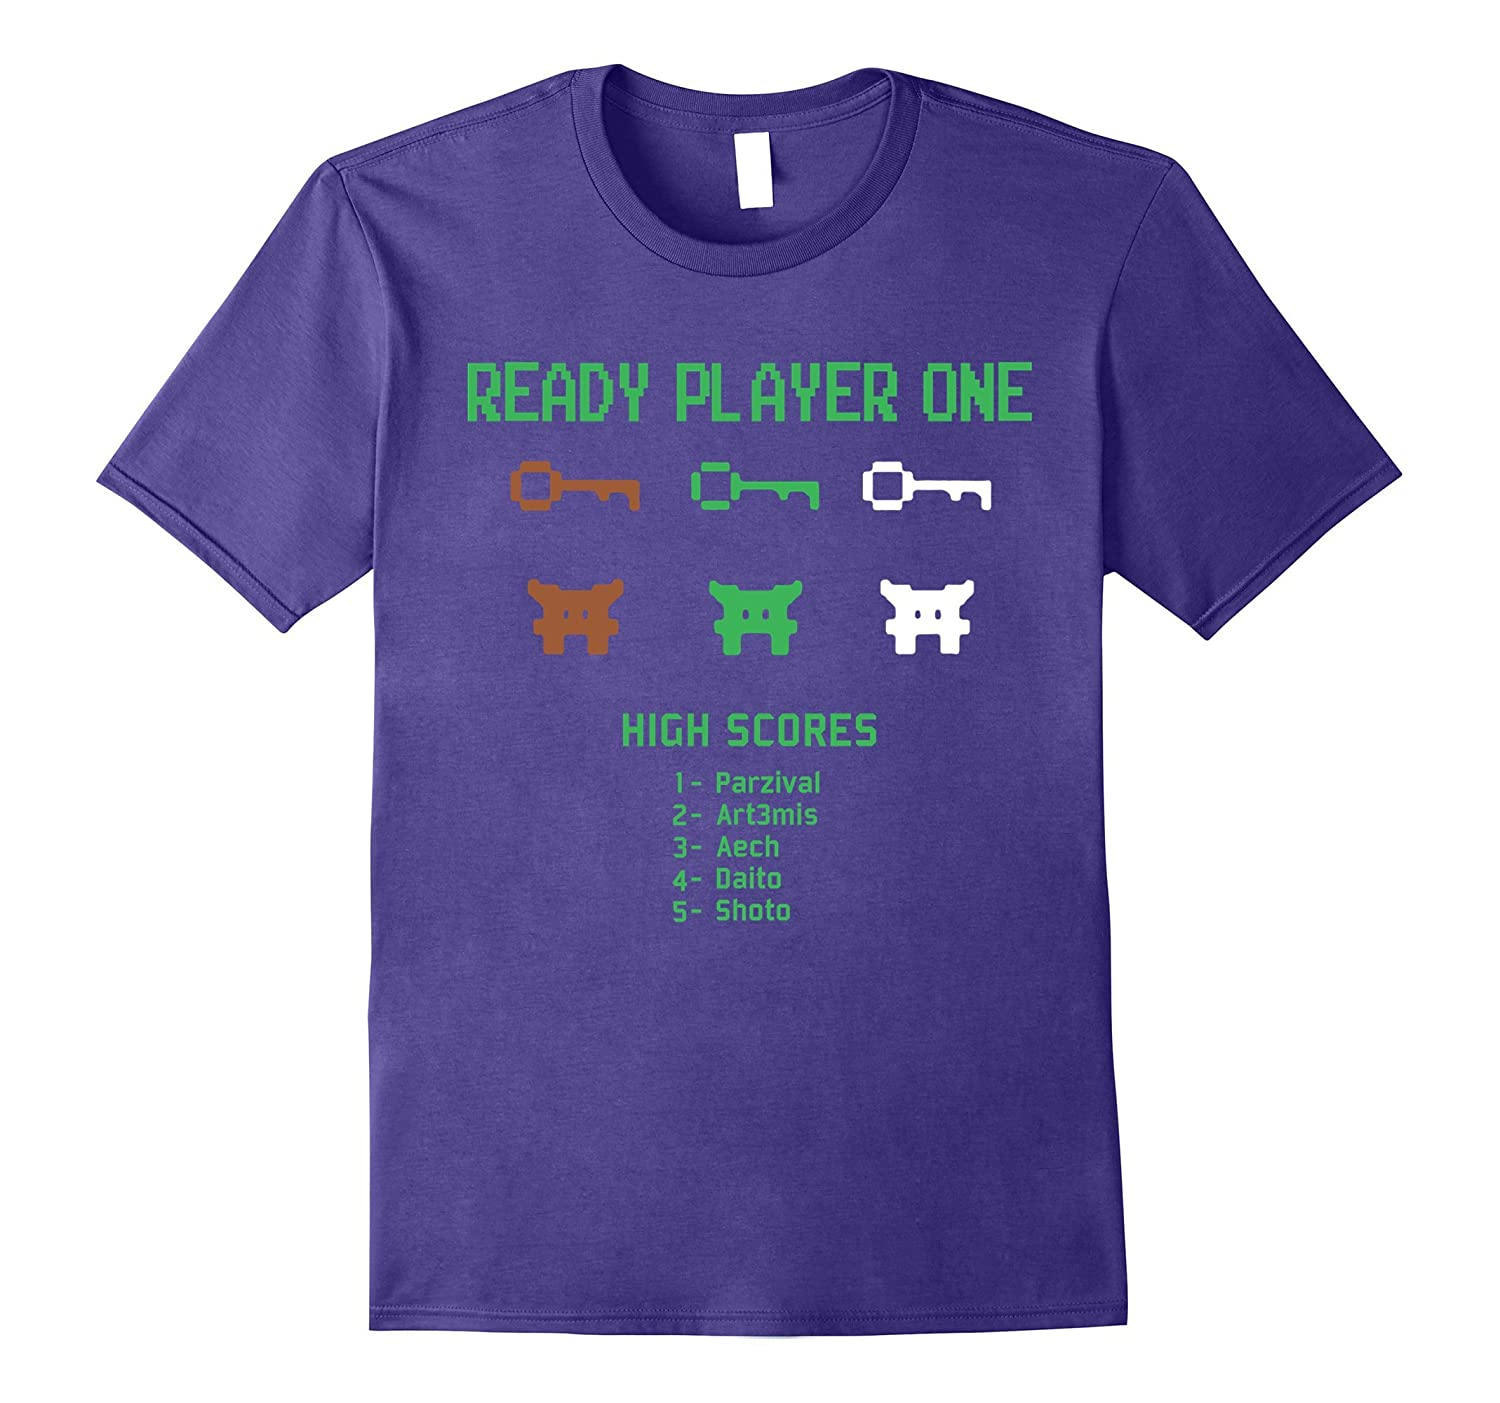 Video Games T-Shirt, Ready Play One Shirt-CL